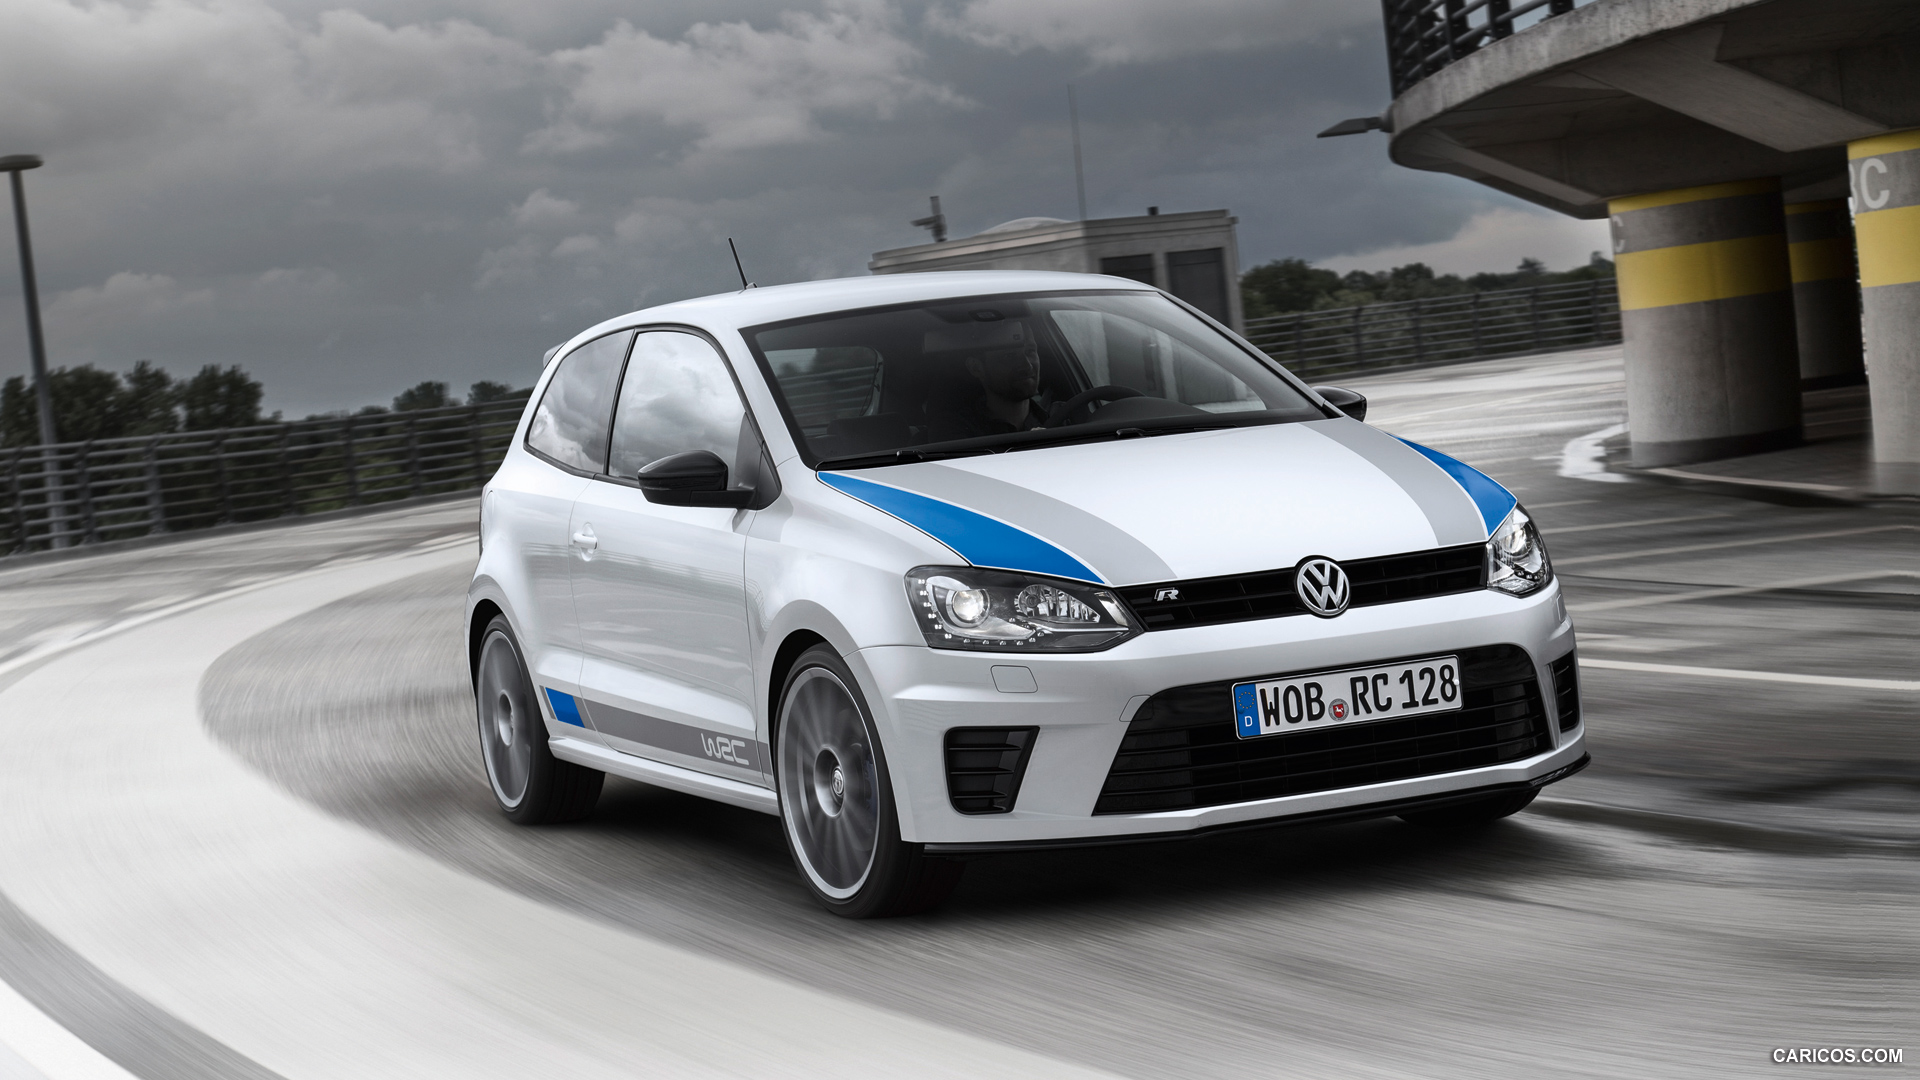 volkswagen polo r wrc street photos photo gallery page 2. Black Bedroom Furniture Sets. Home Design Ideas